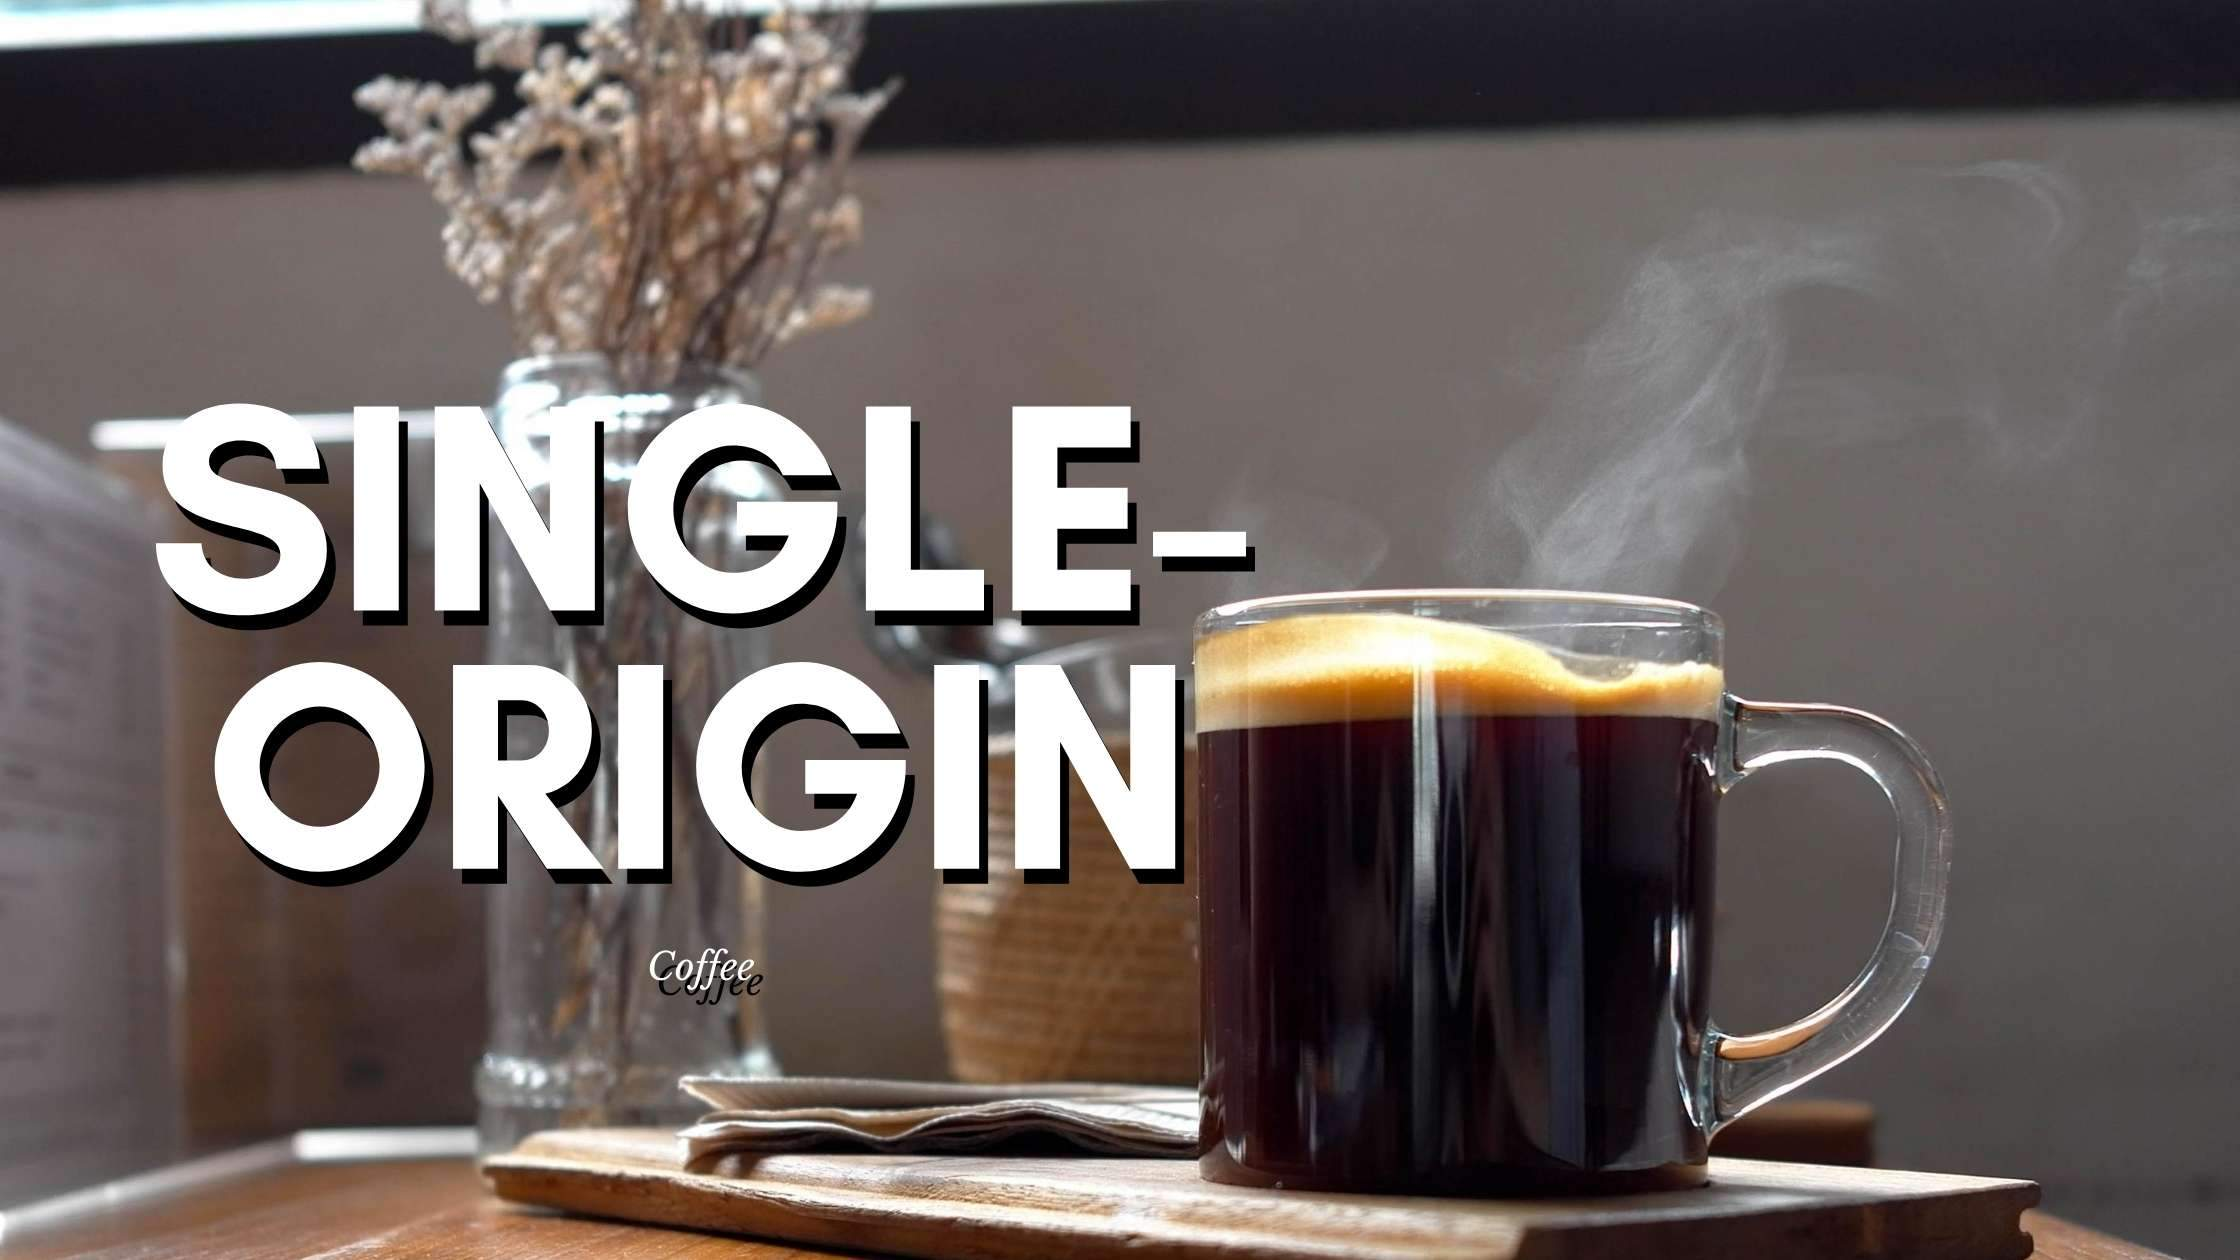 What is Single Origin Coffee? 9 Things You Need to Know About Single-origin Coffee